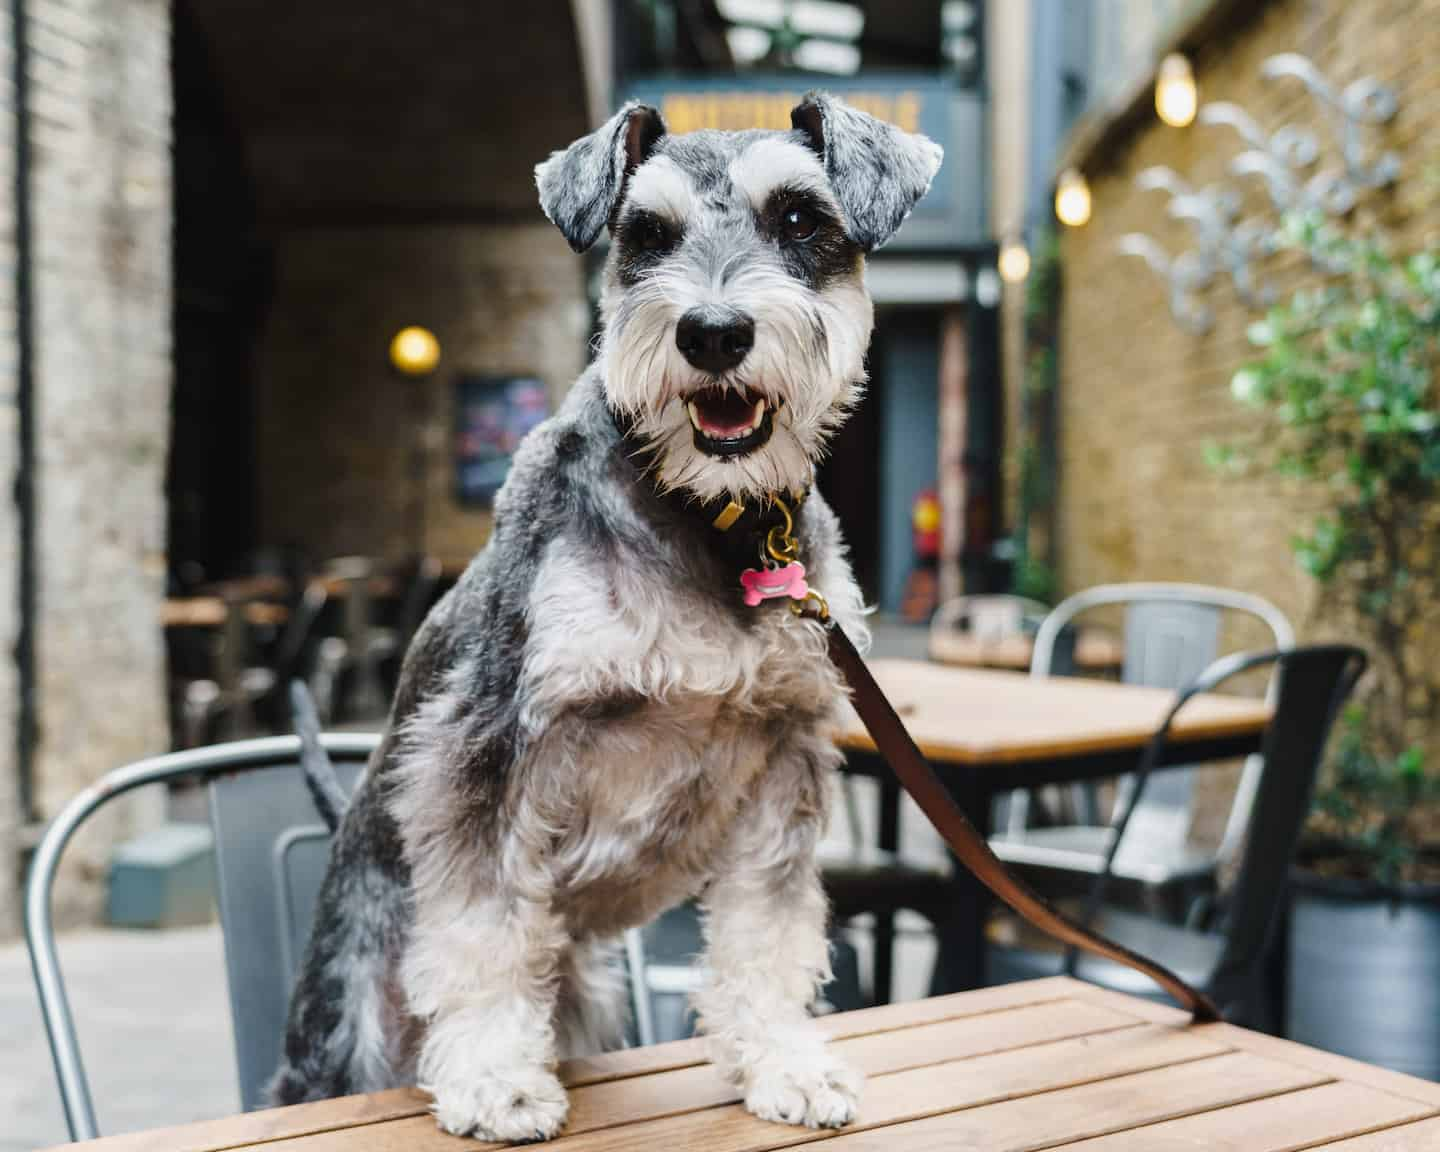 My Dog Friendly London By Rusty Red The Schnauzer | Dog Friendly Shoreditch and Hoxton Bike Shed 1